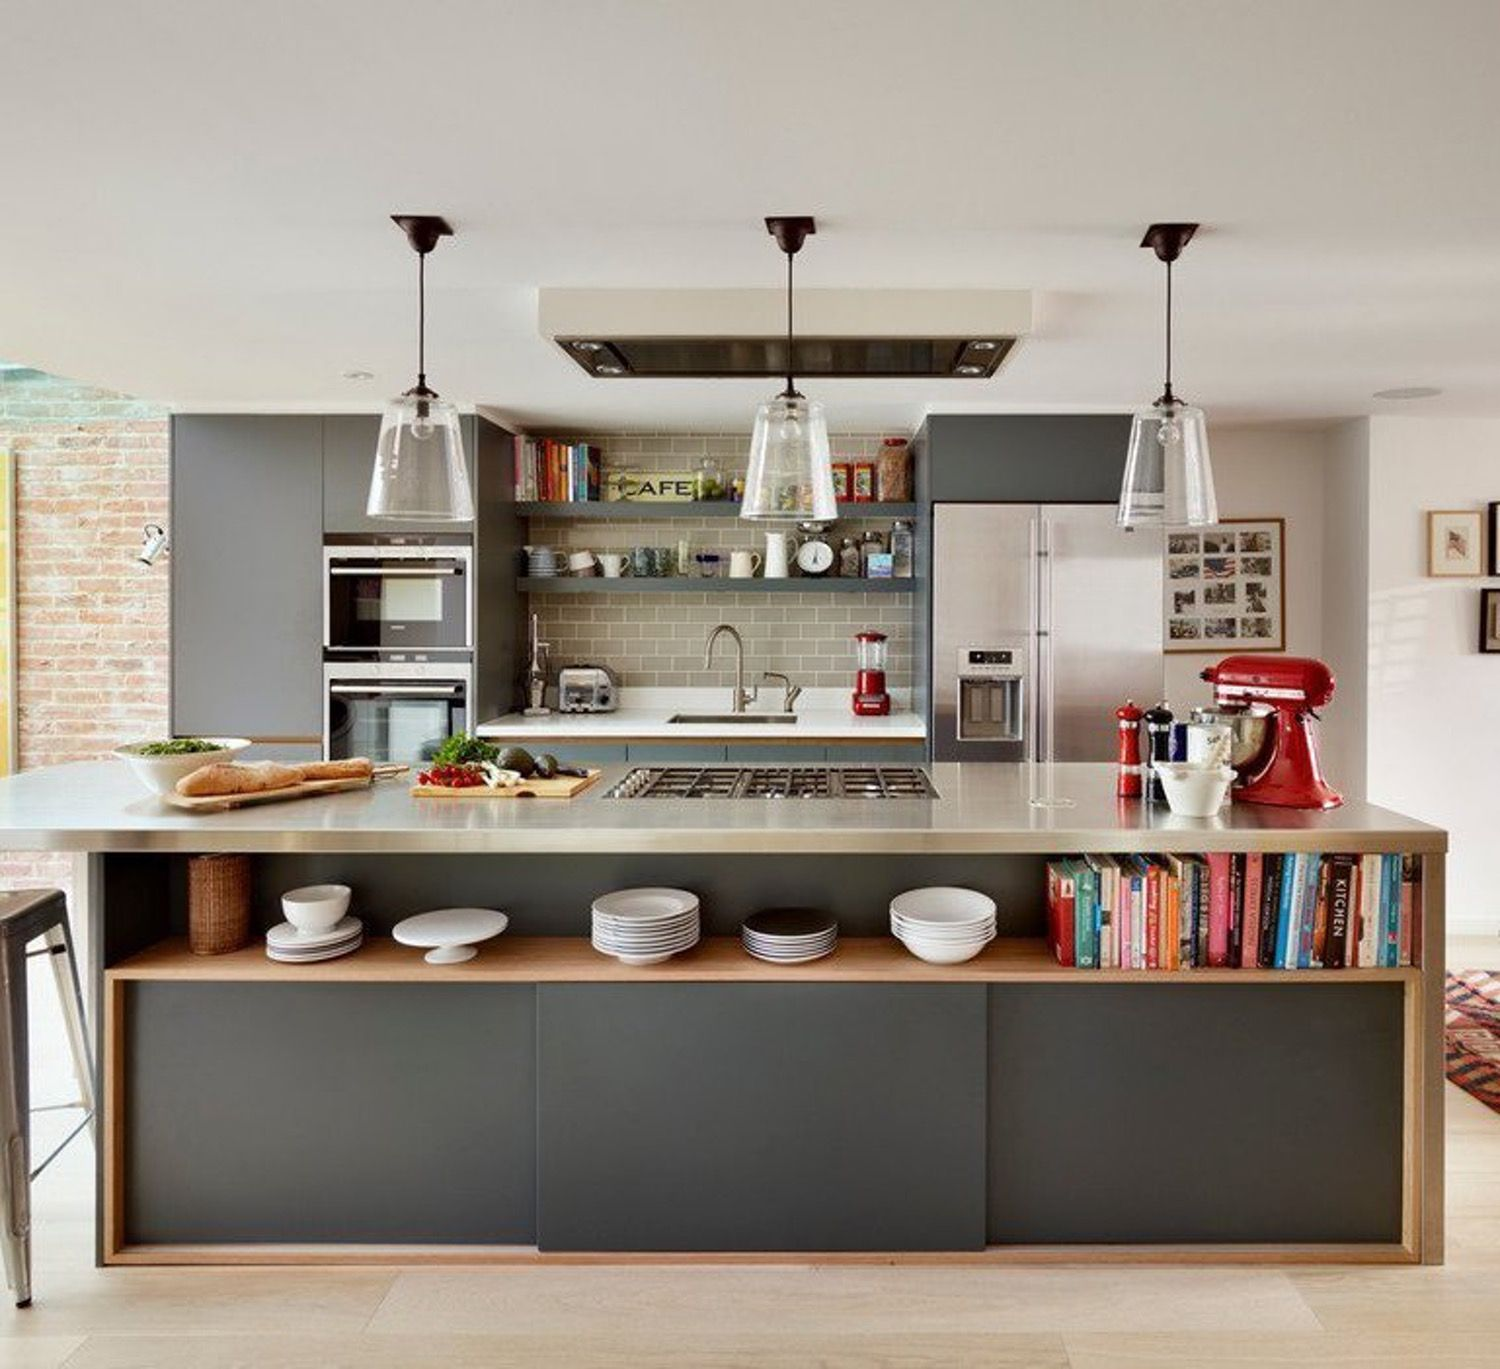 10 Kitchen Islands That We Wish Were in Our Kitchens